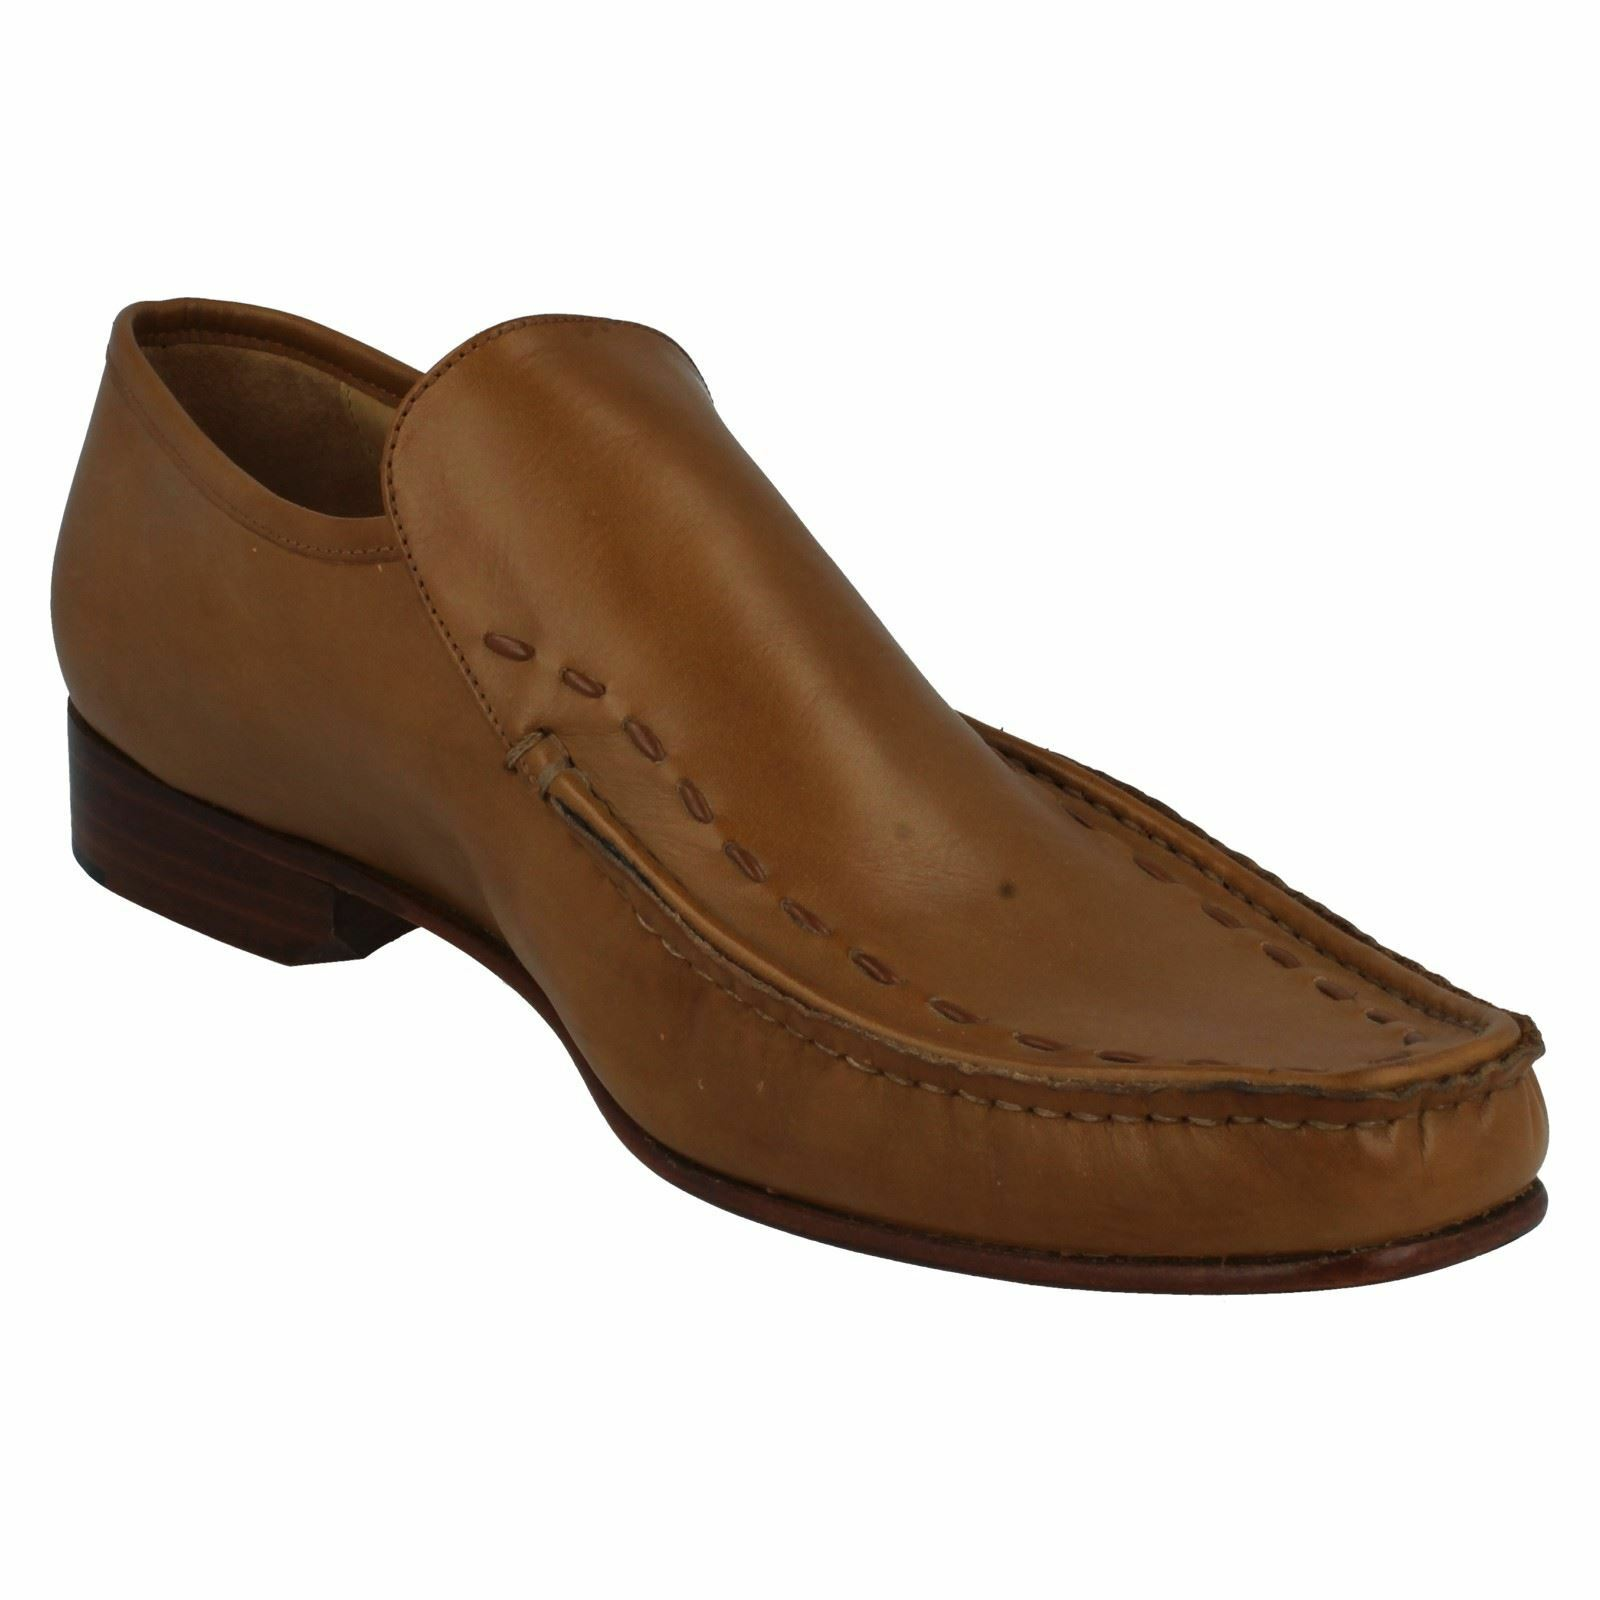 Men's Grenson Feathermaster Shoes F Fit - Maine 9683